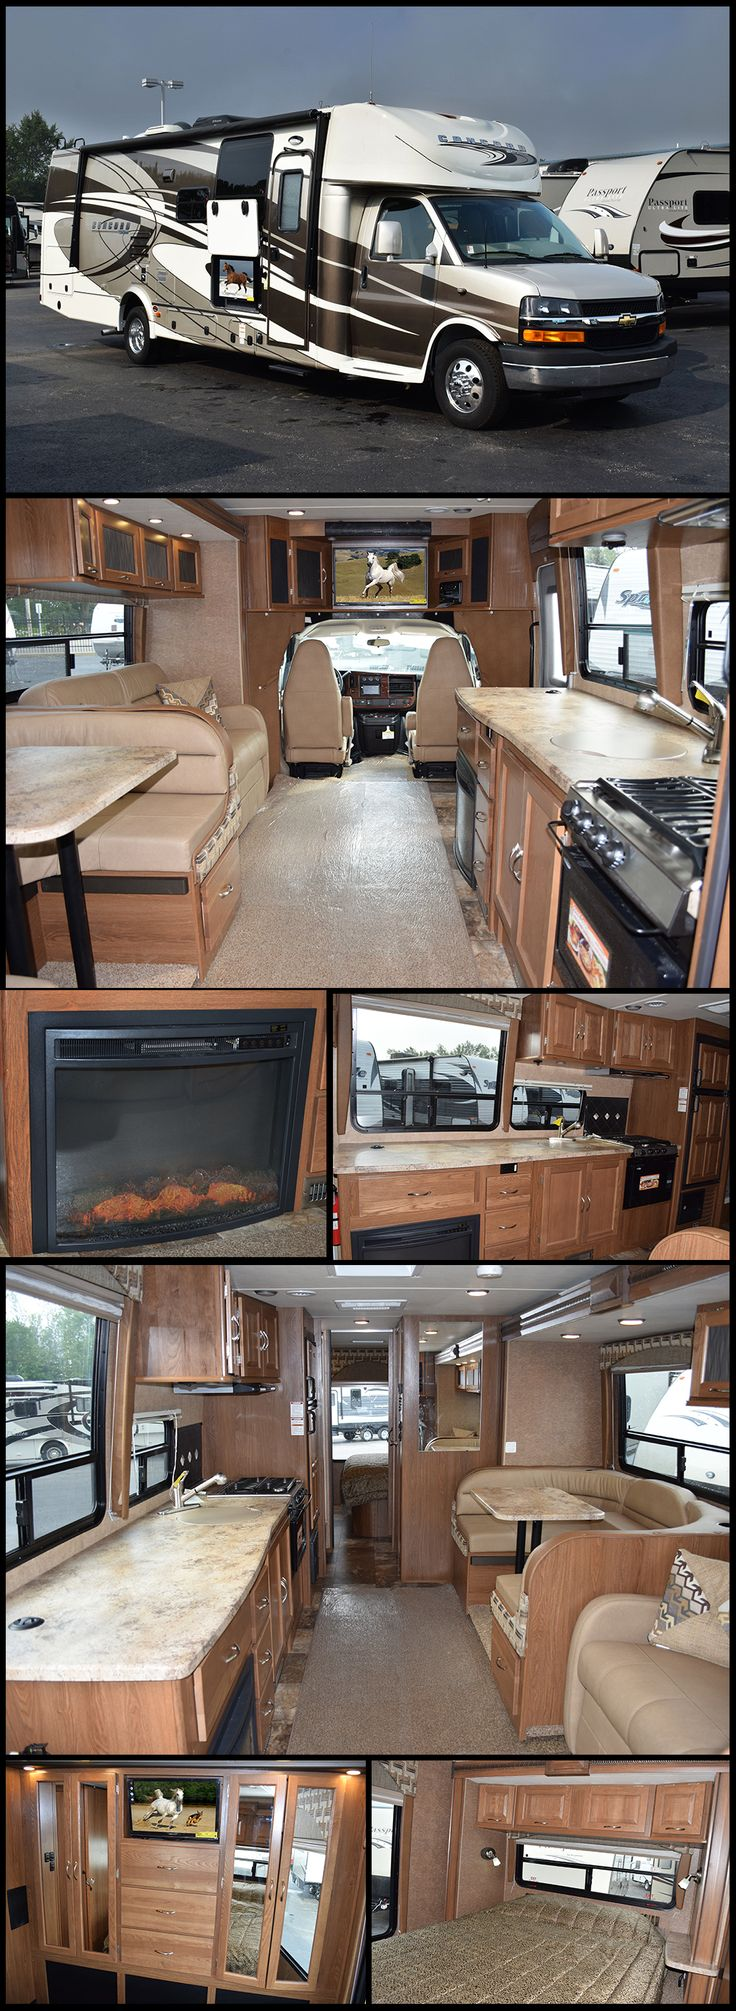 "The 2016 COACHMEN CONCORD 300DSC provides a luxurious and convenient solution to both traveling and RVing. This smart travel minded Class C is equipped and built with an attitude of providing the ""best"" in form, fit and function. Outside the Concord boasts curved sidewalls with sleek stylish front and rear fiberglass caps that give the Coachmen Concord a distinctive high-end look and an aerodynamic, easy to drive profile."